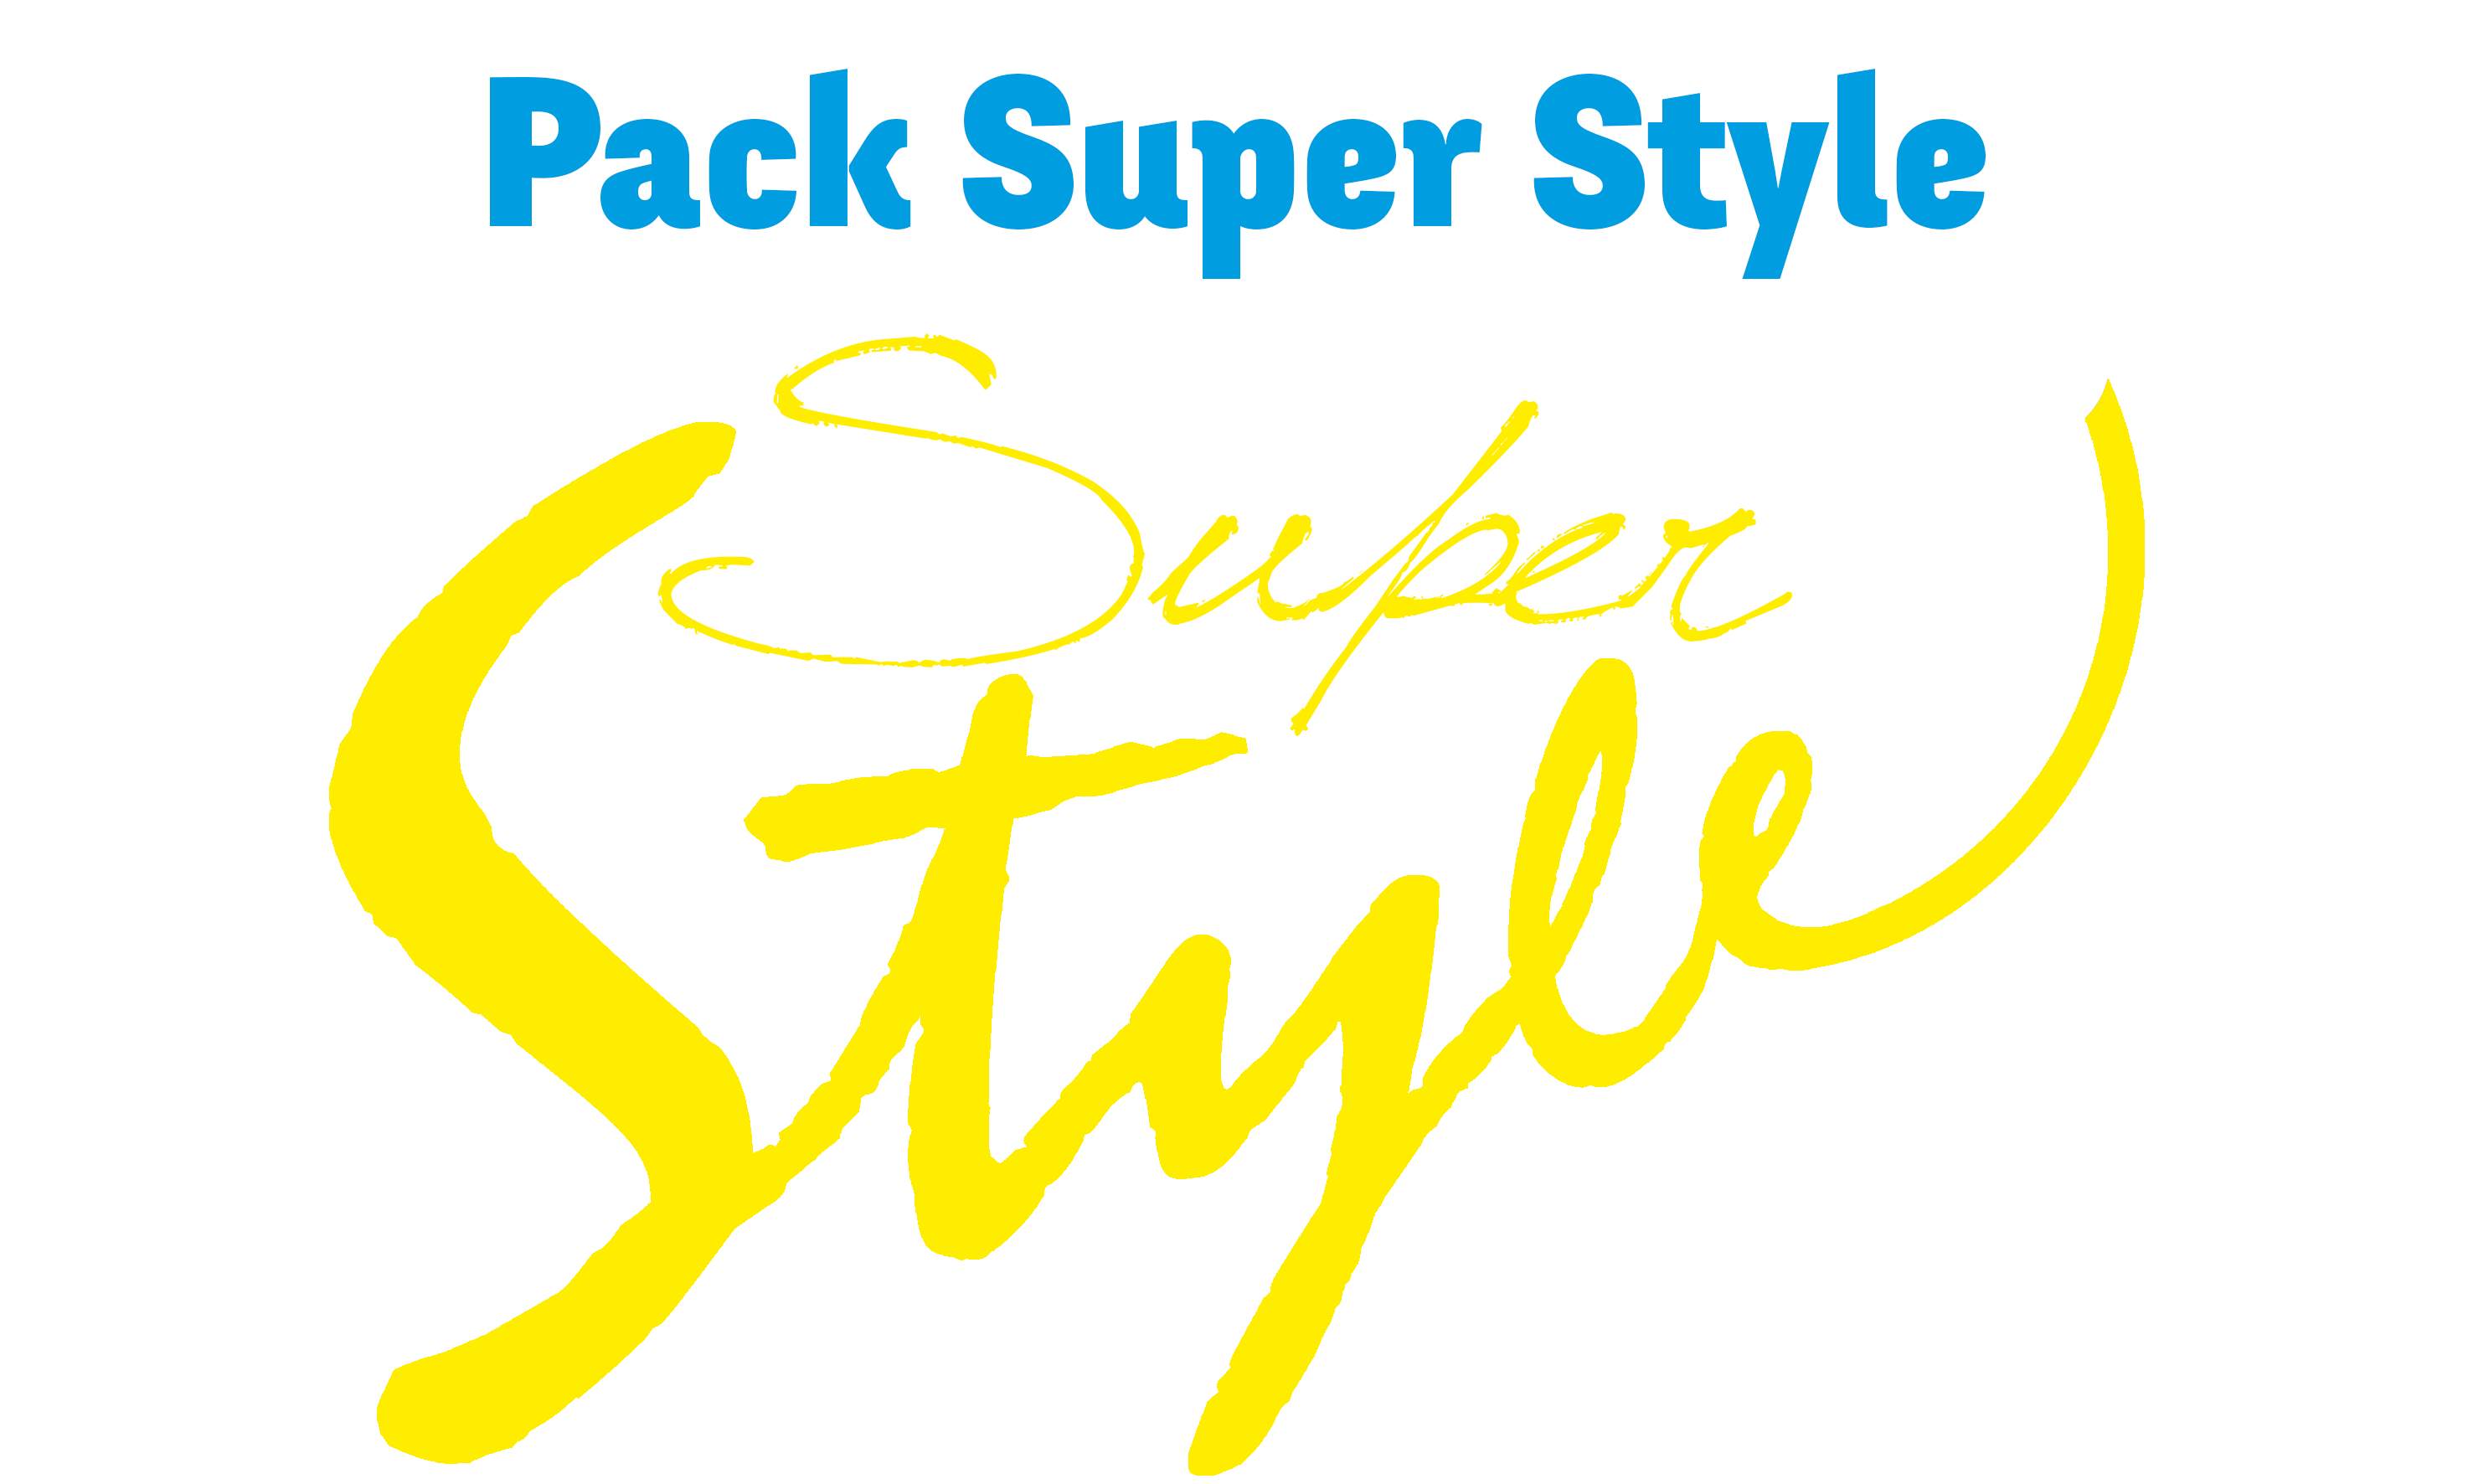 Pack_Super_Style-1464602809.png